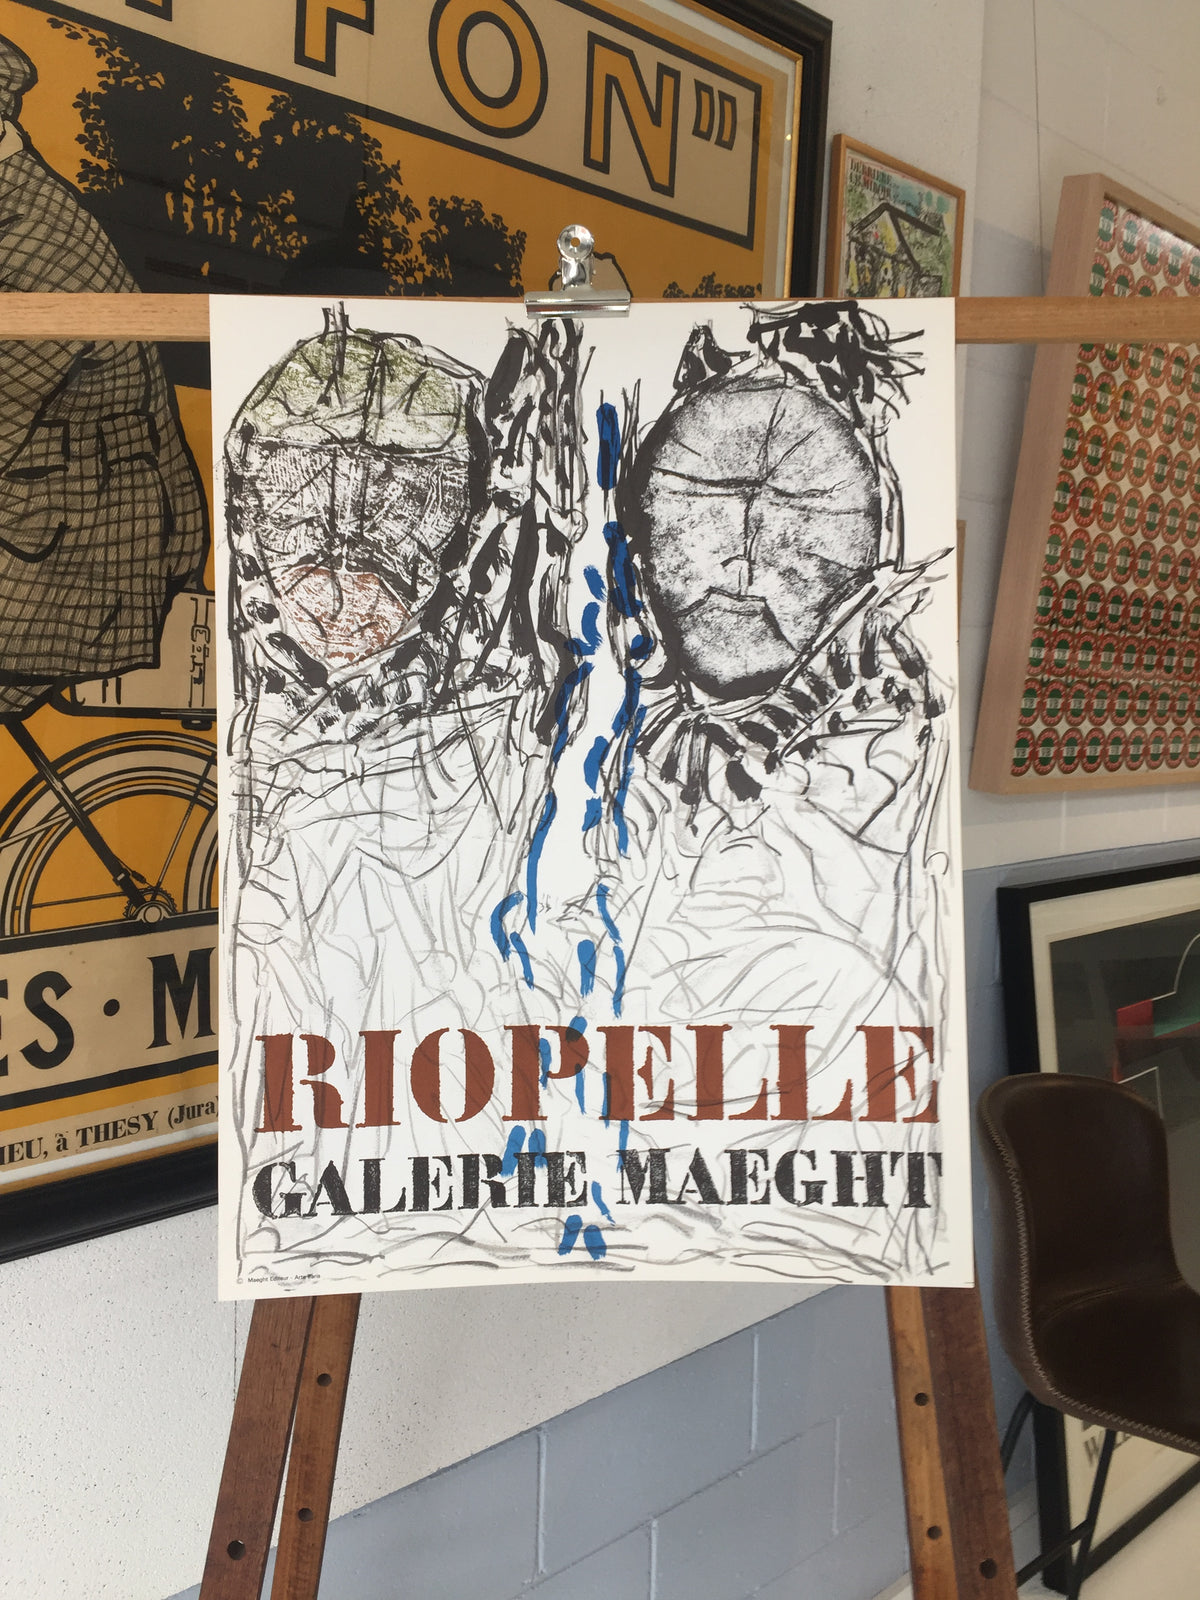 Riopelle, Galerie Maeght